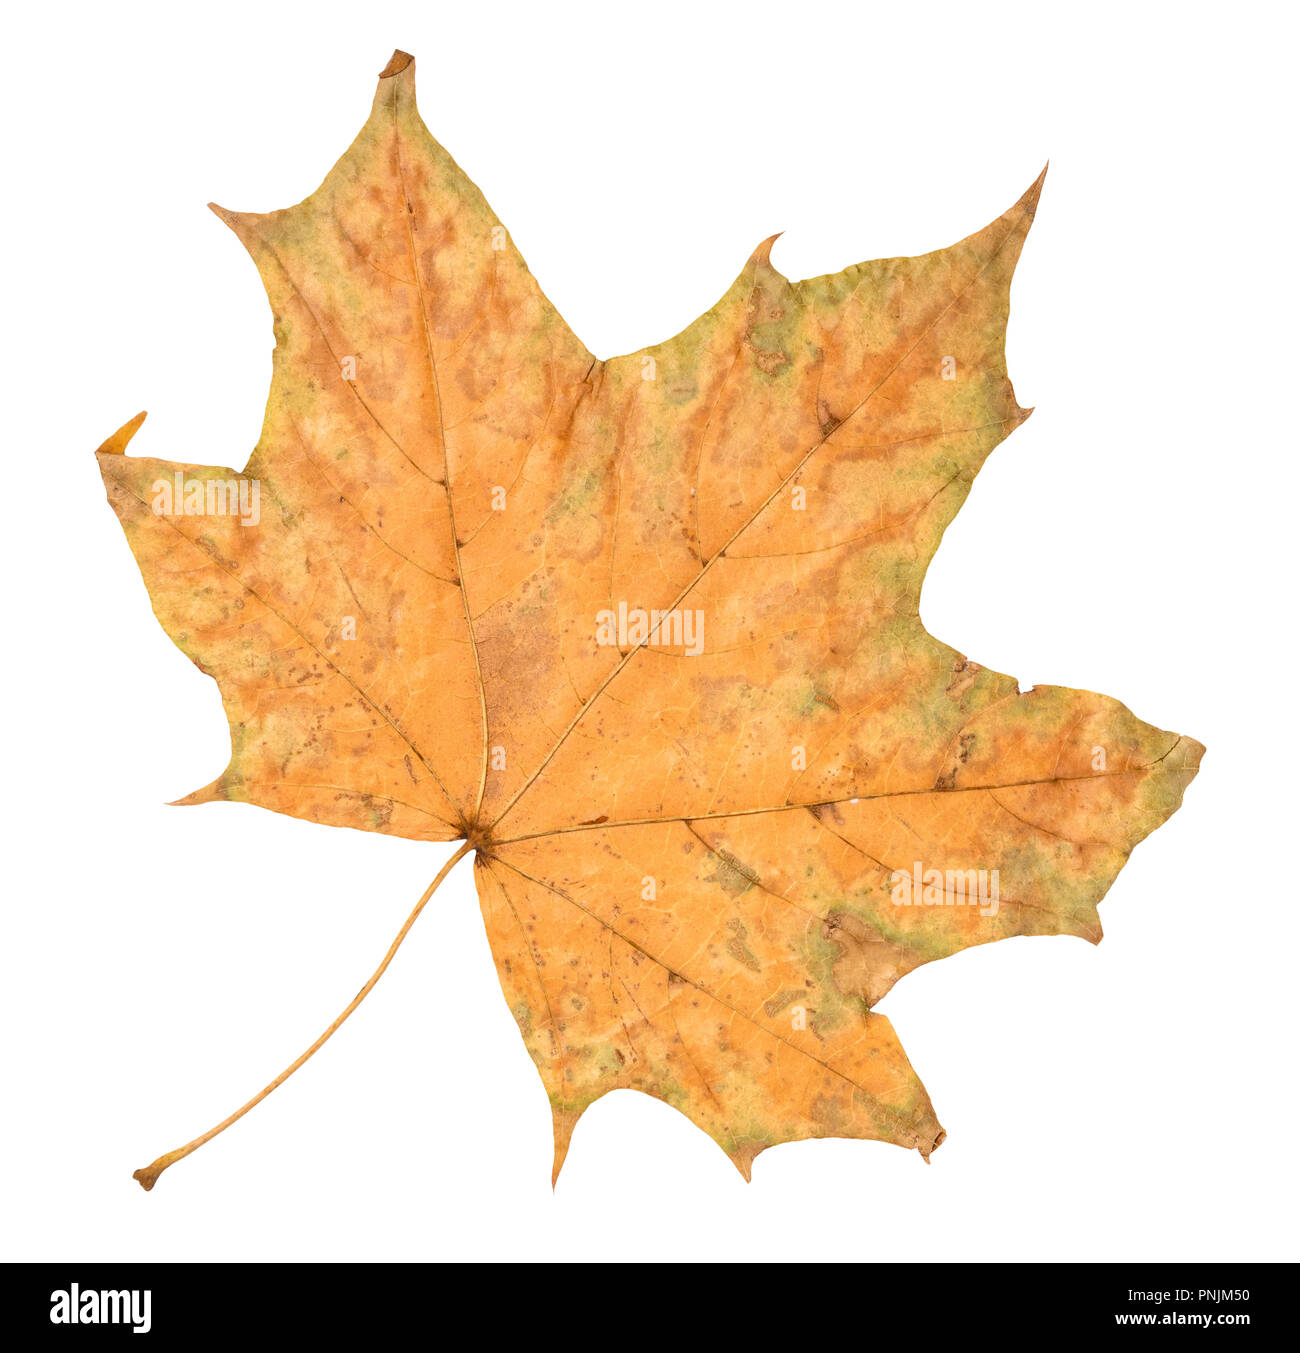 dried fallen autumn leaf of maple tree cut out on white background Stock Photo